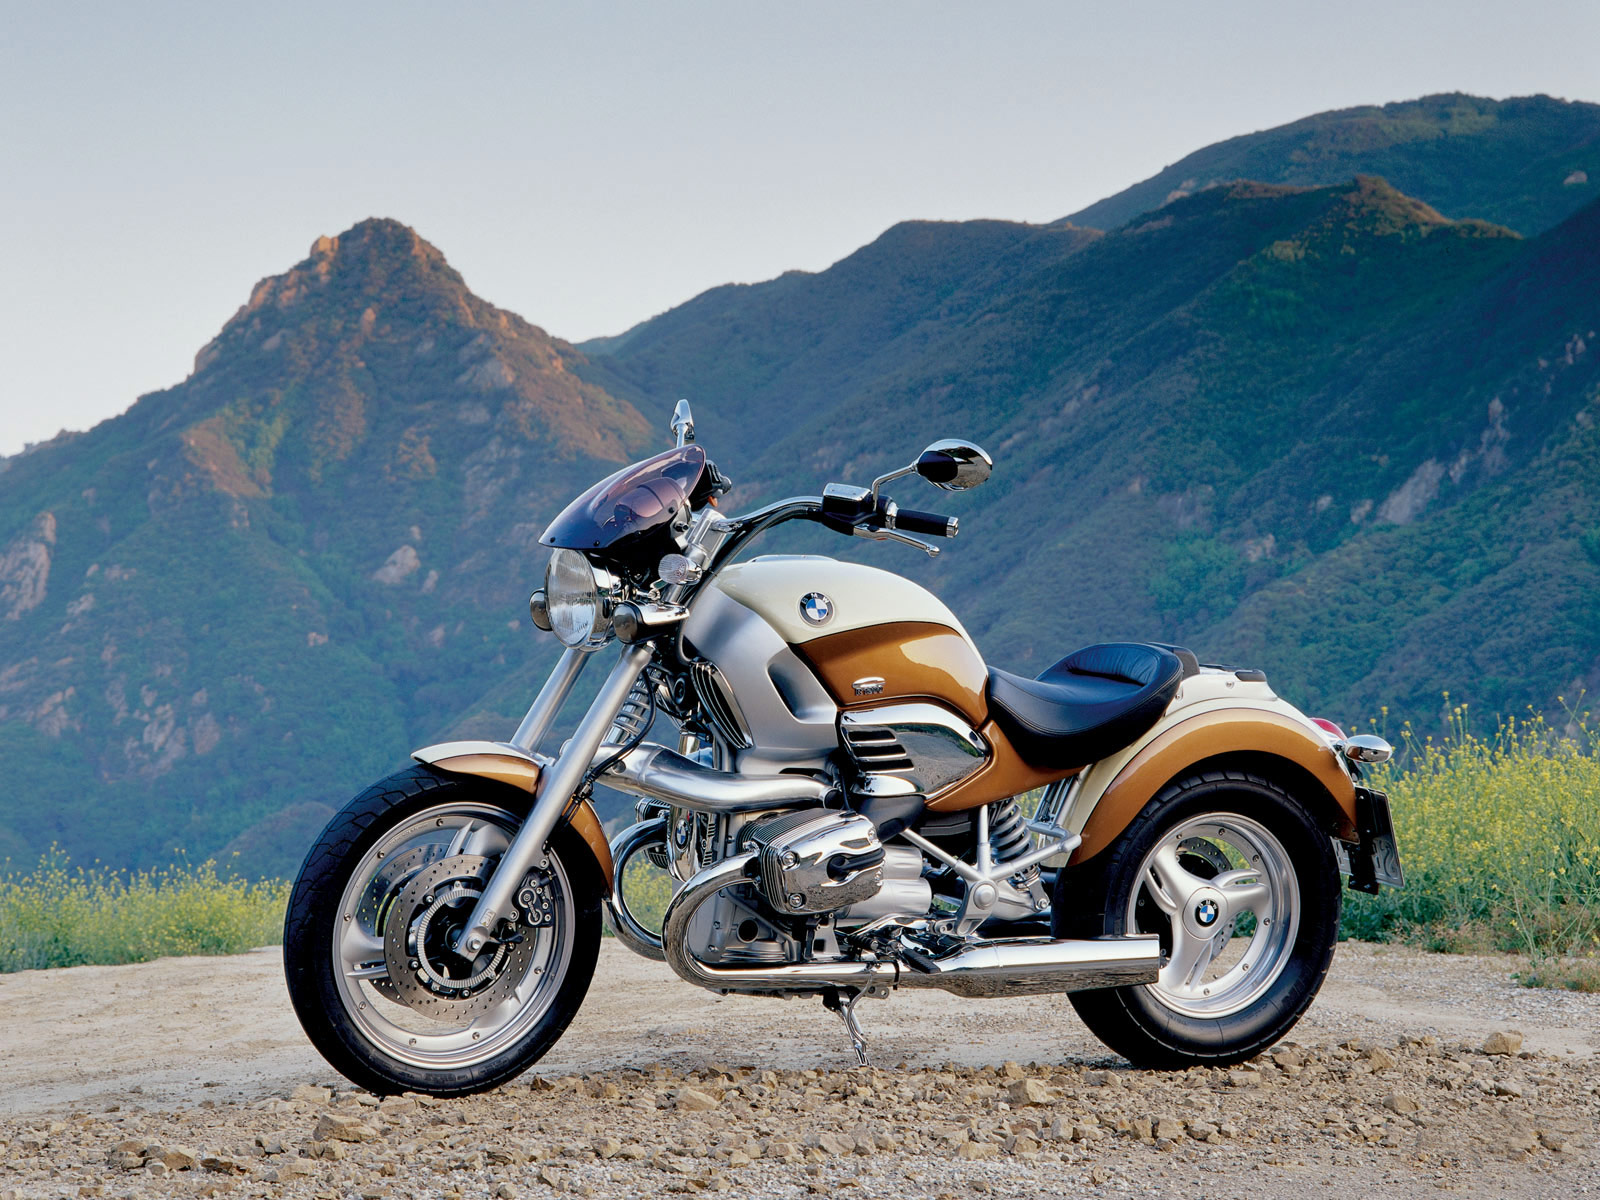 2000 Bmw R1200c Independent Pictures Specs Accident Lawyers